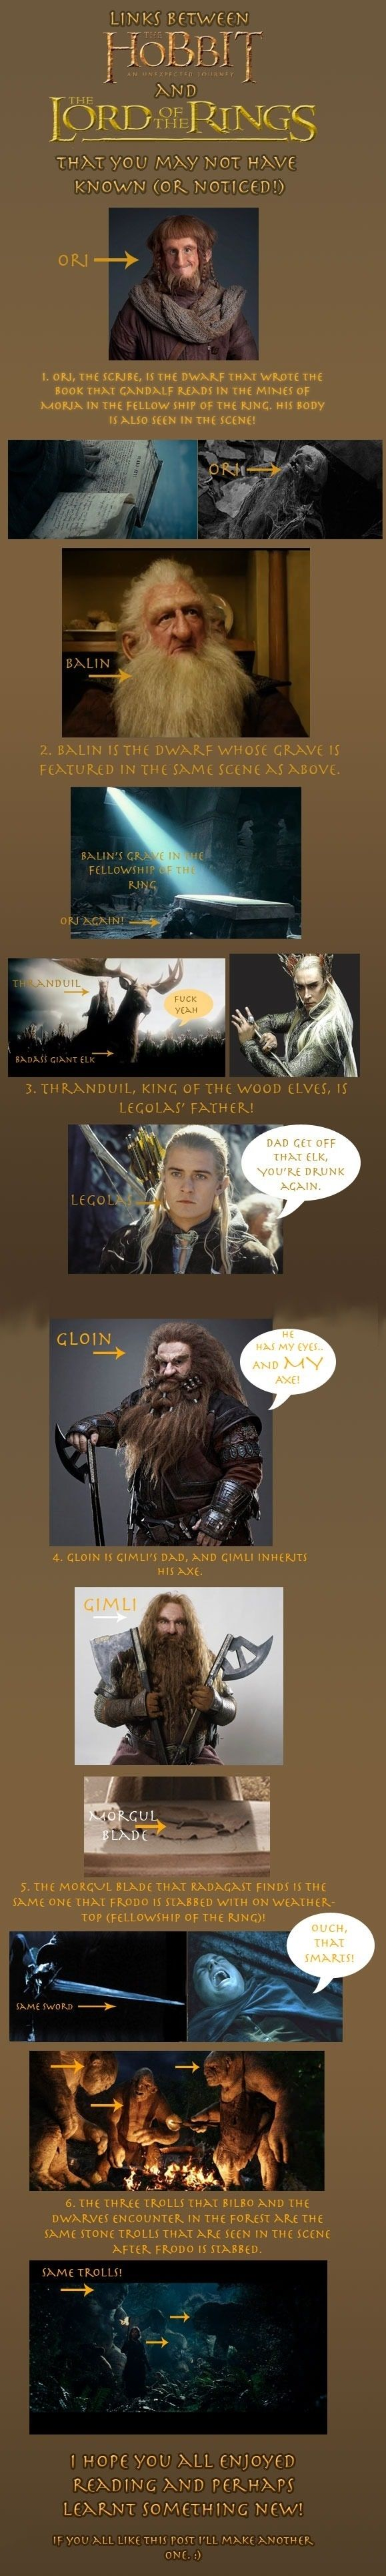 For the Hobbit/LOTR fans. I already knew most of these.